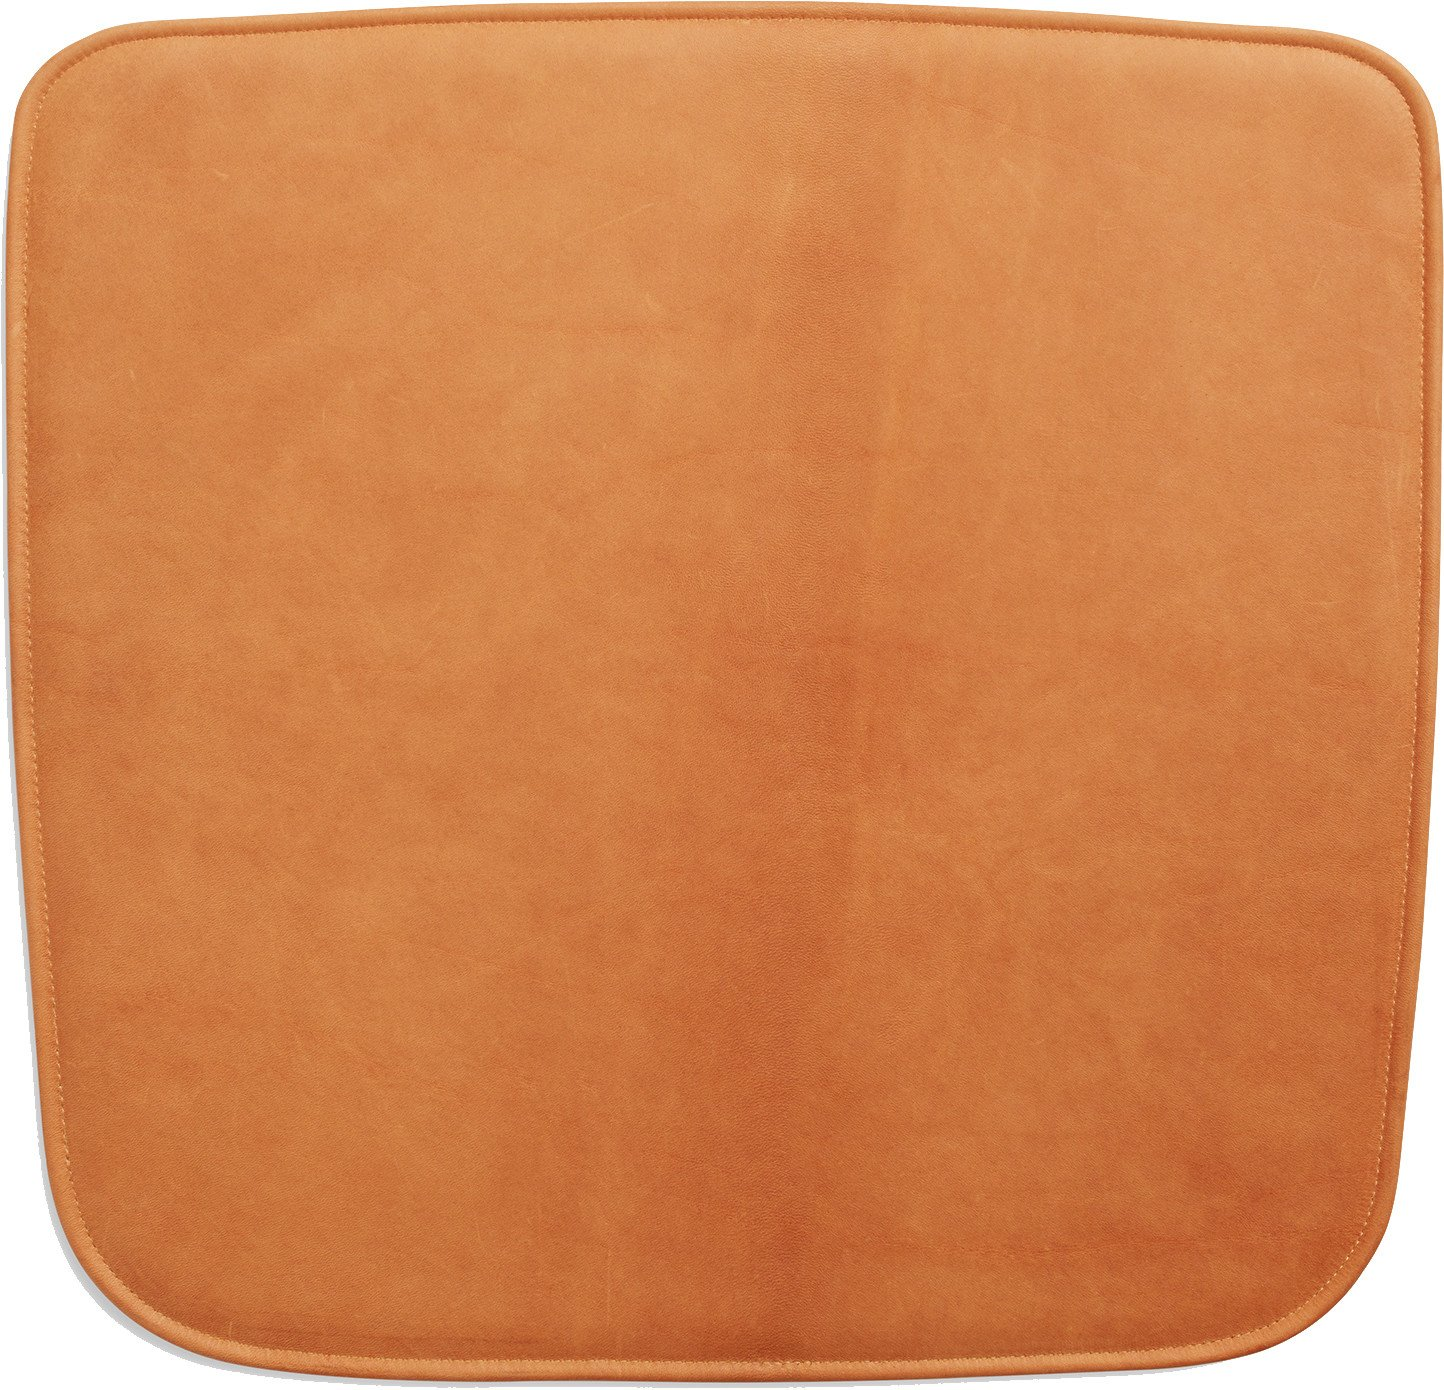 Hven Bar Stool Cushion Aniline Leather Orange by A. Björsing, Skagerak